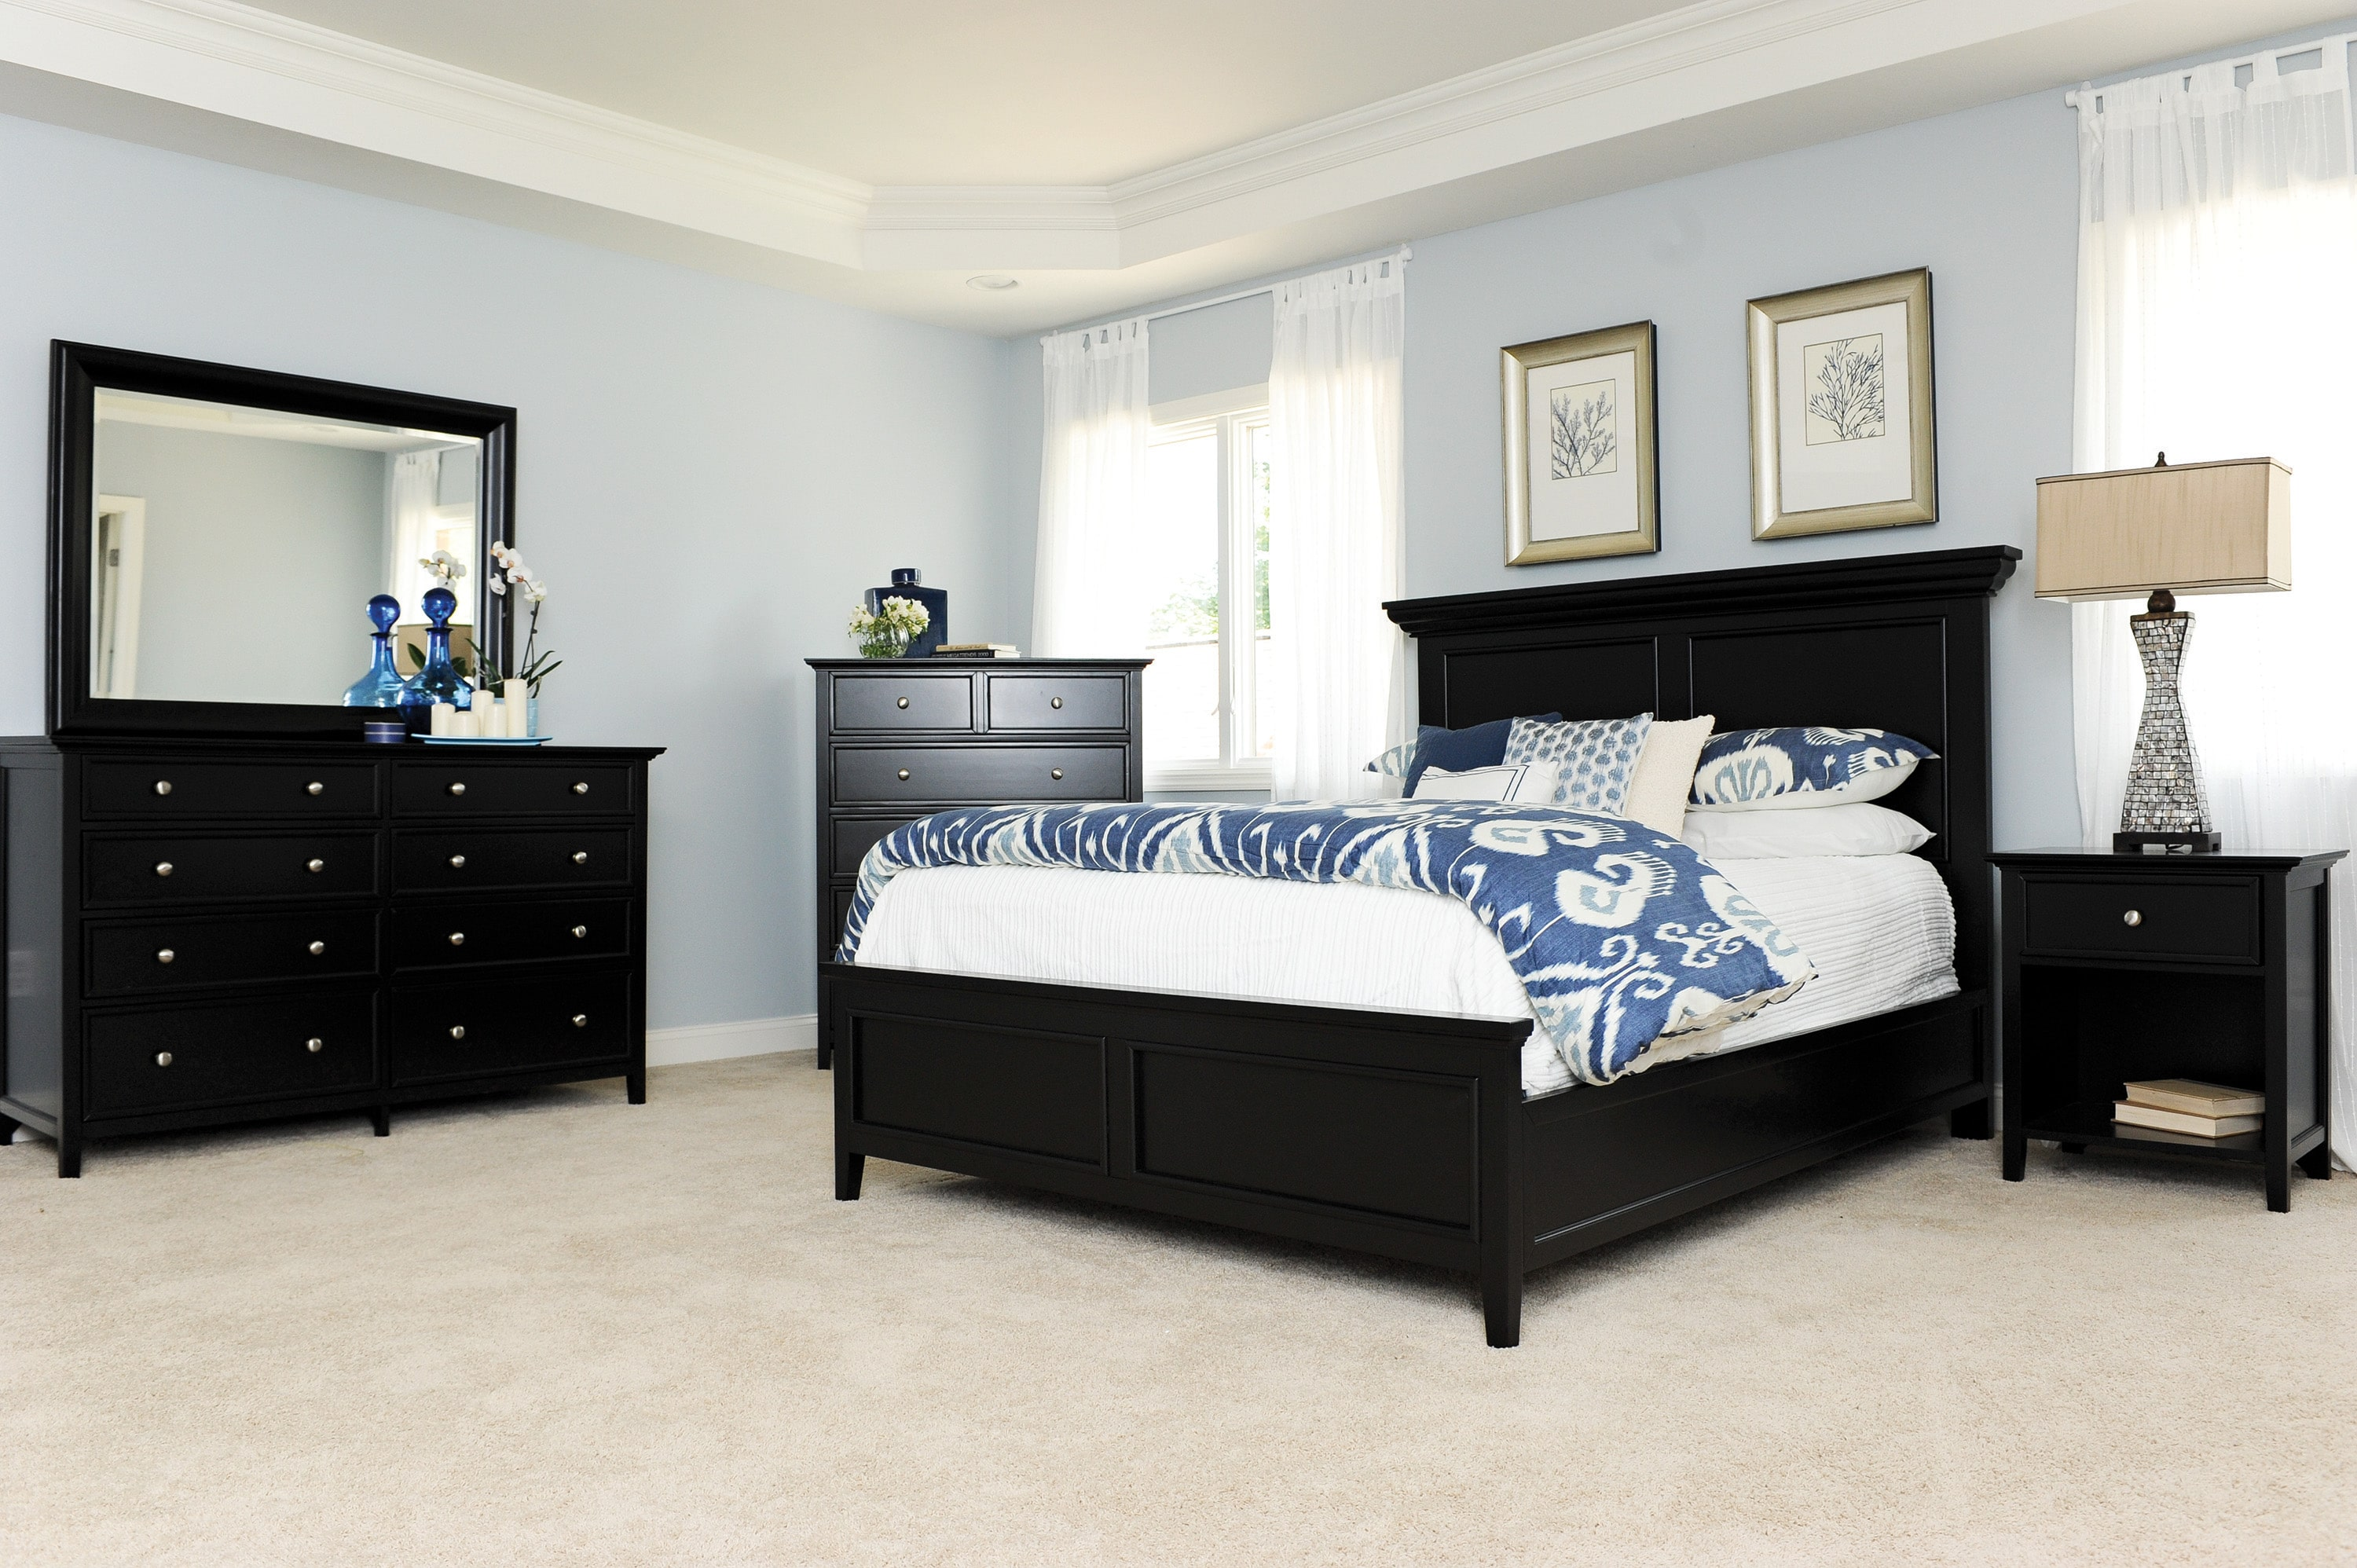 Bedroom Furniture - Ellsworth 4-Piece Queen Bedroom Set - Black